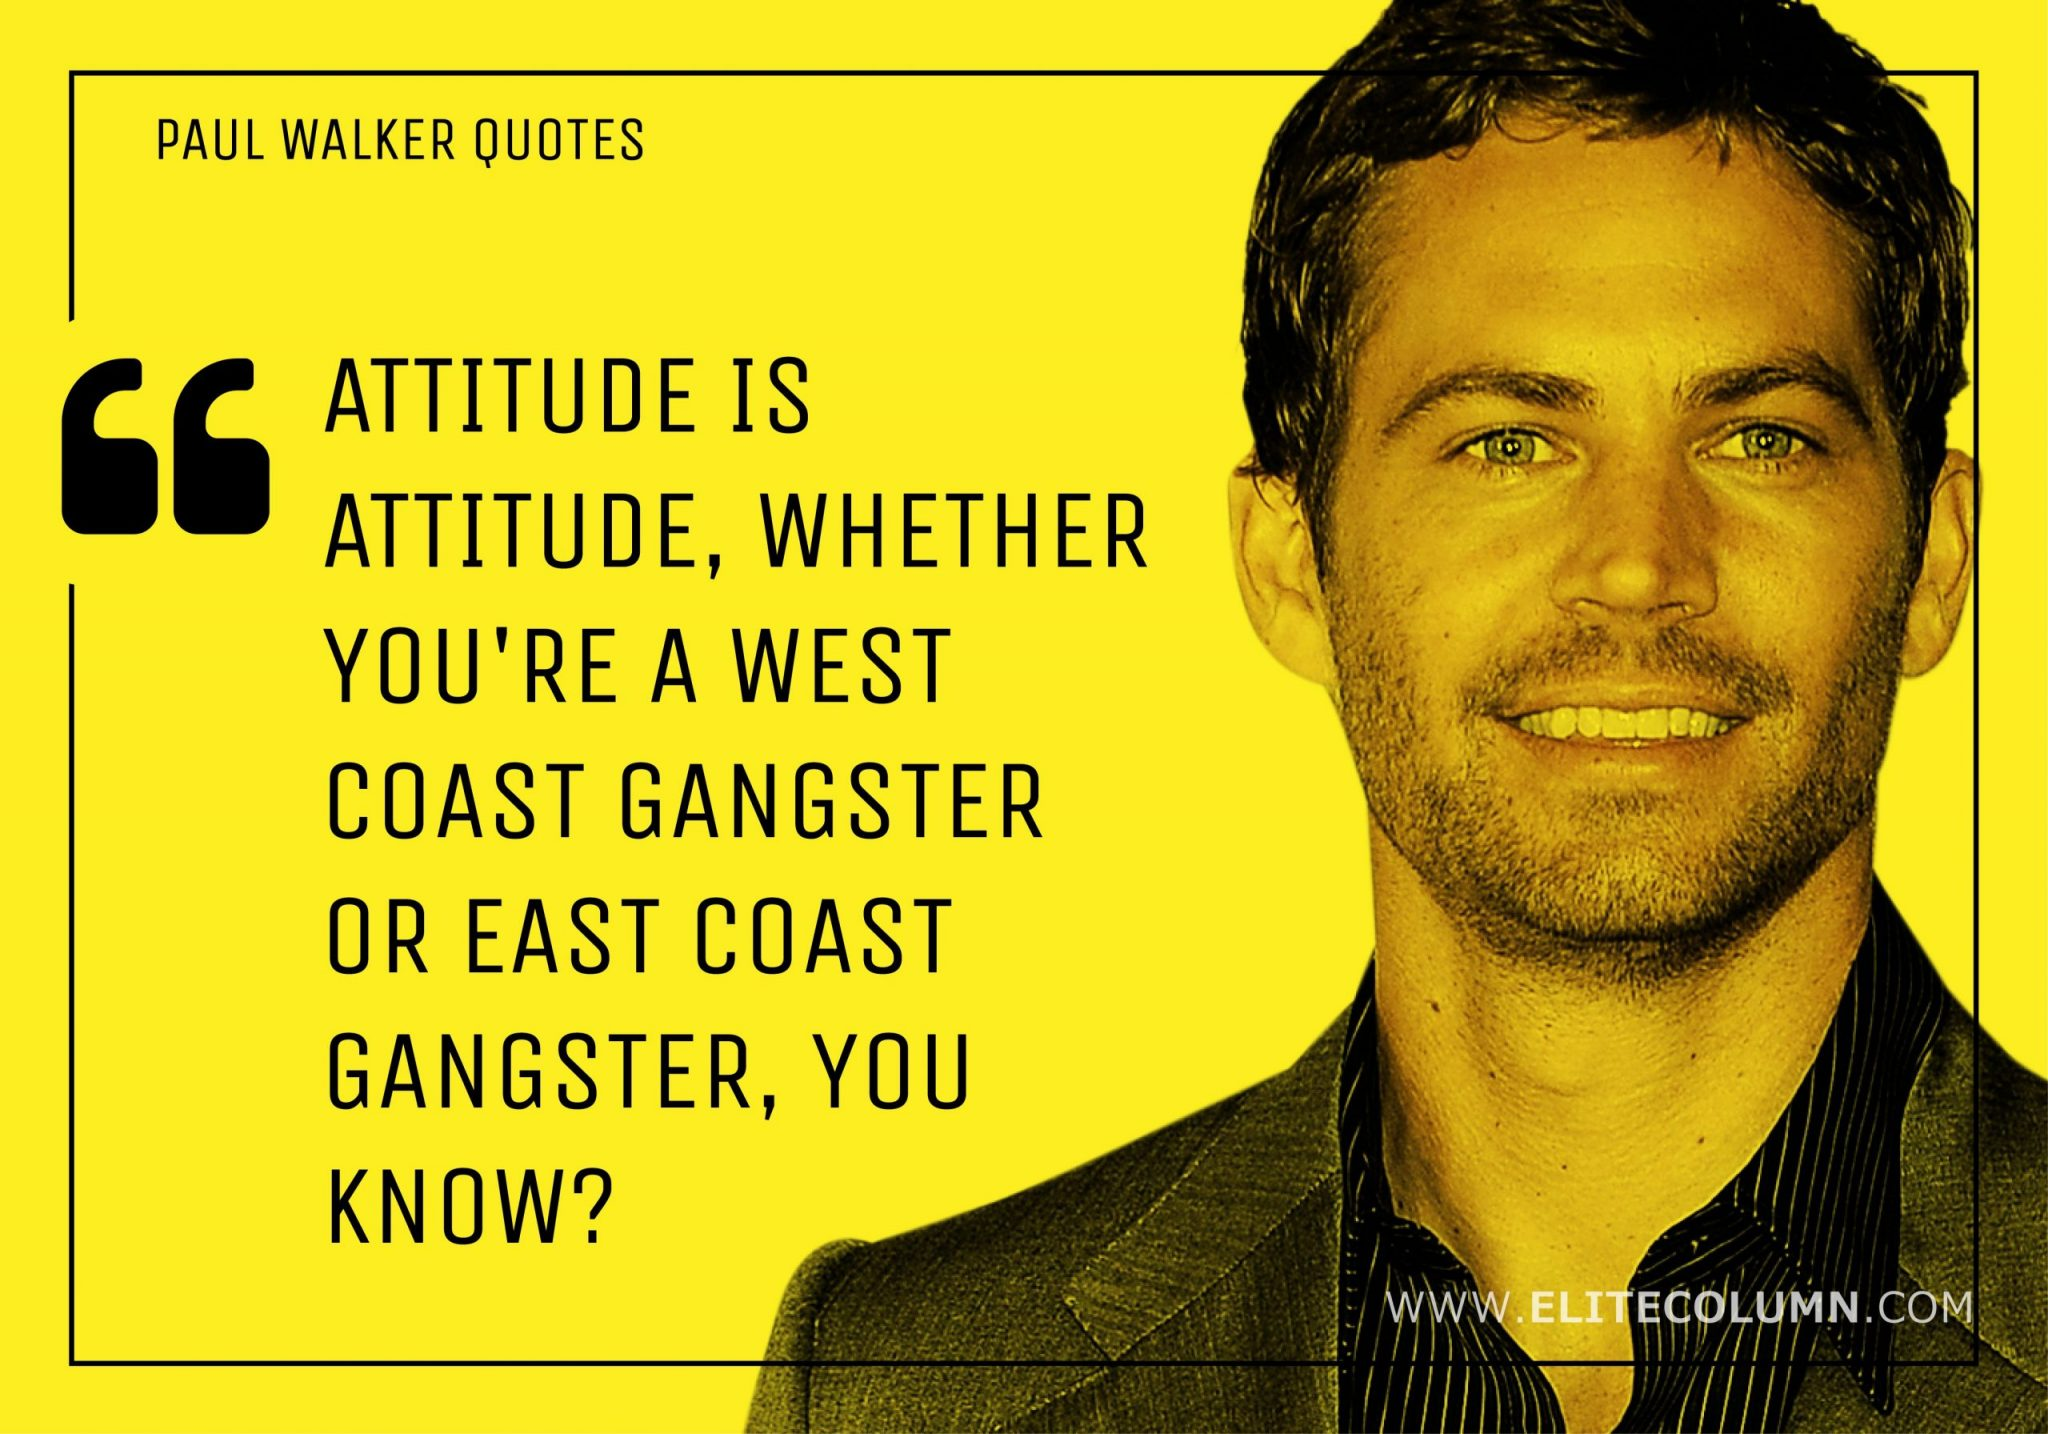 Paul Walker Quotes (4)